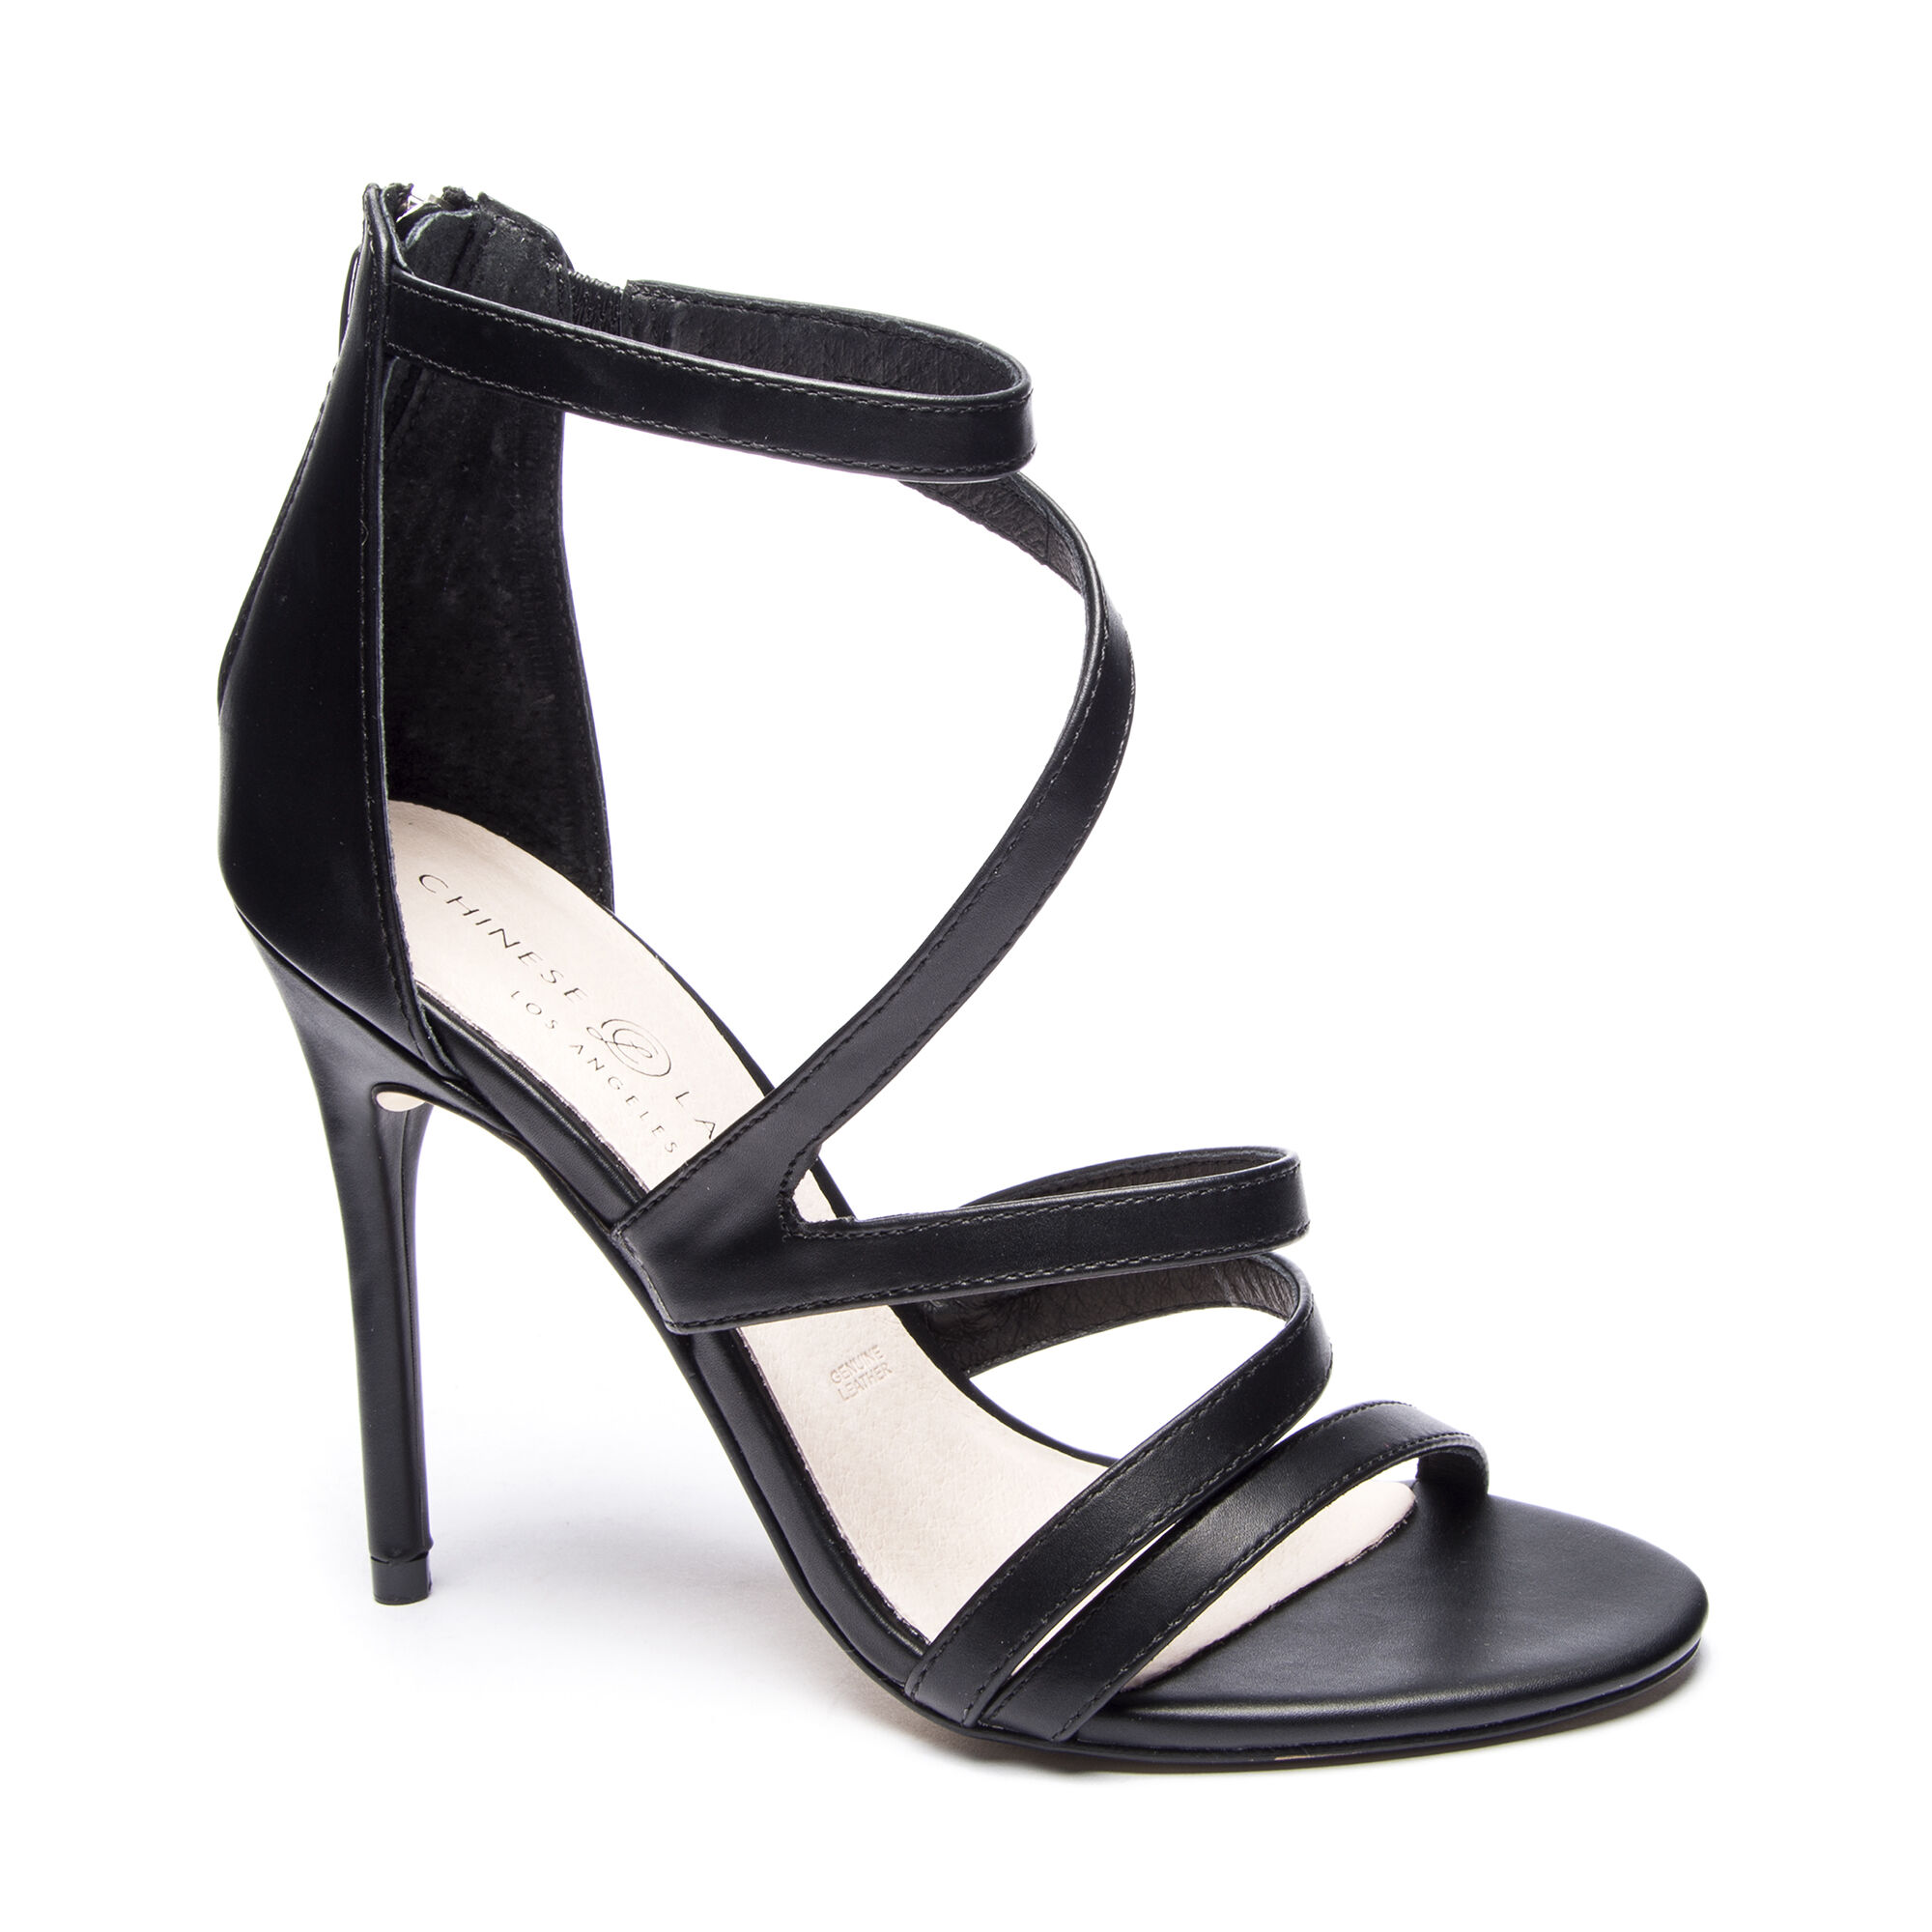 dd55f26cd5 Lalli Strappy Stiletto Heeled Leather Sandals